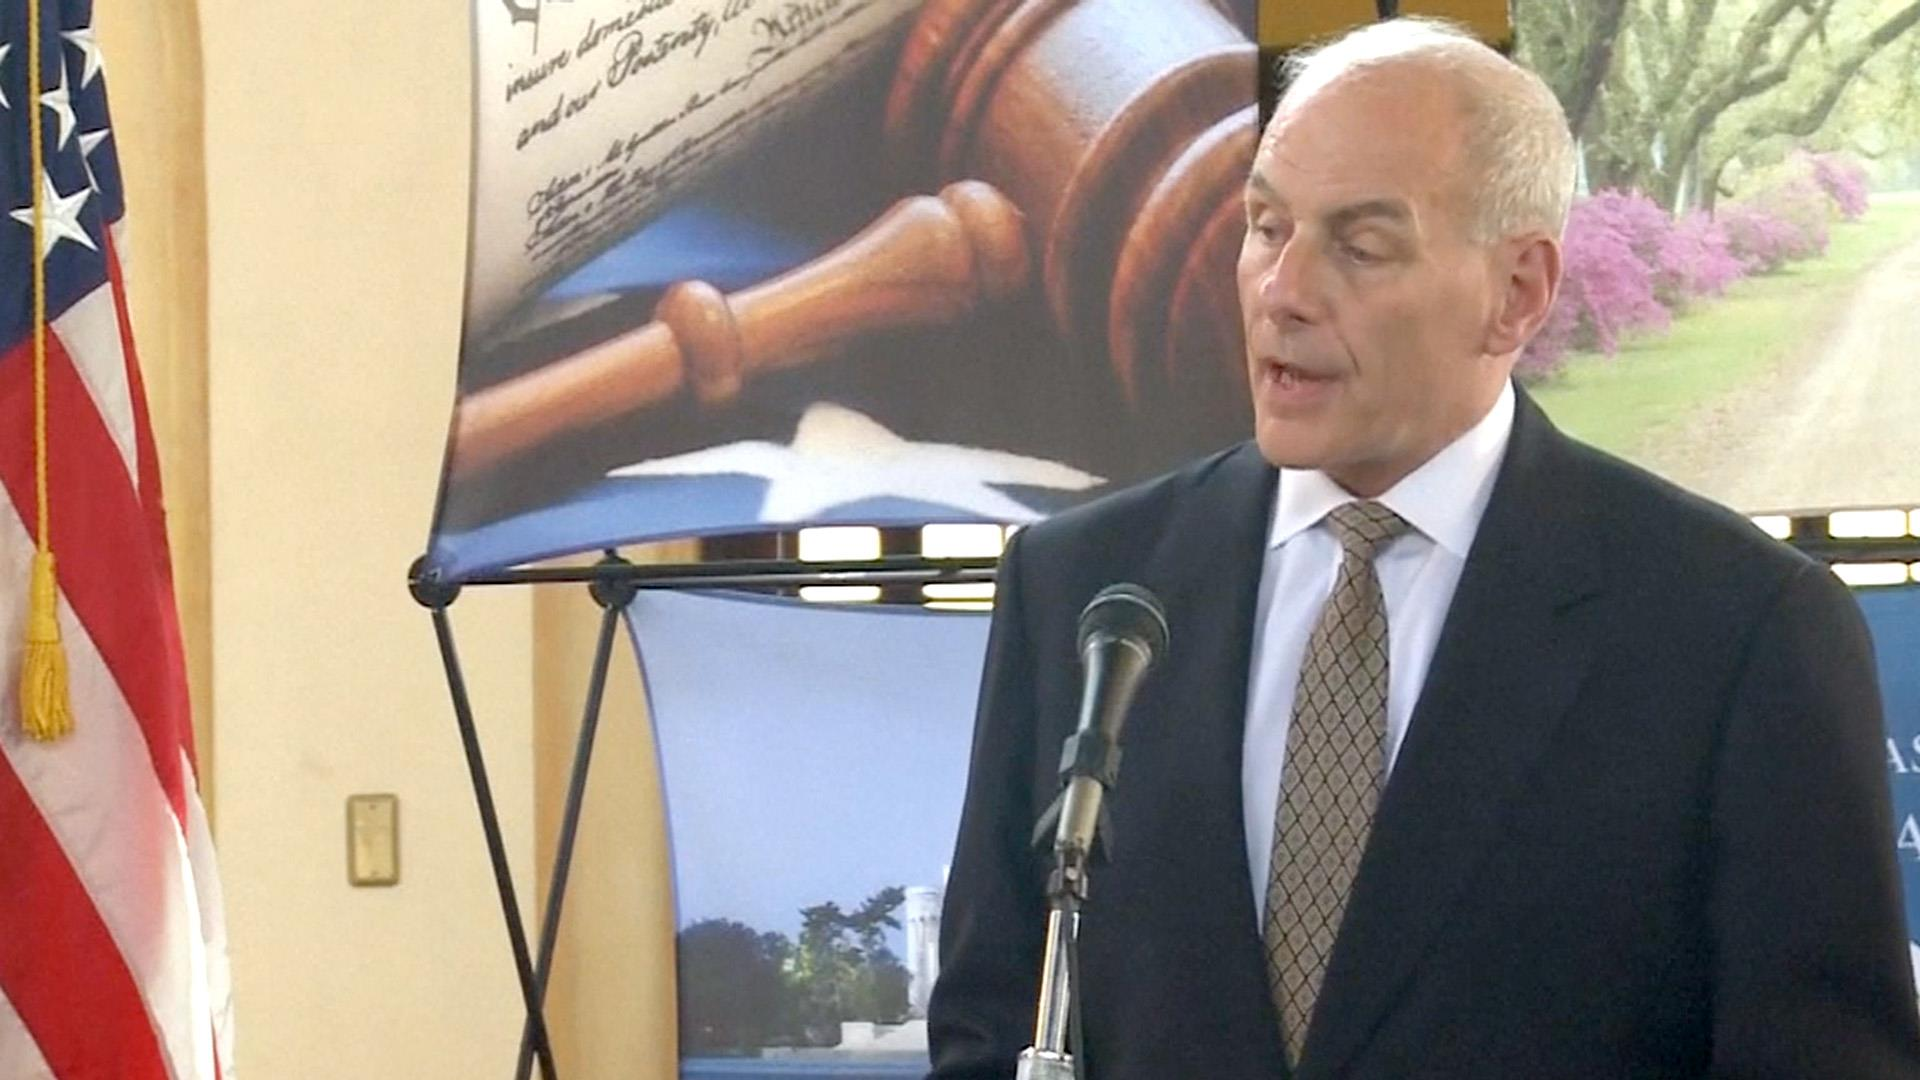 Secy. Kelly: There Will Be No Mass Undocumented Immigrant Roundups